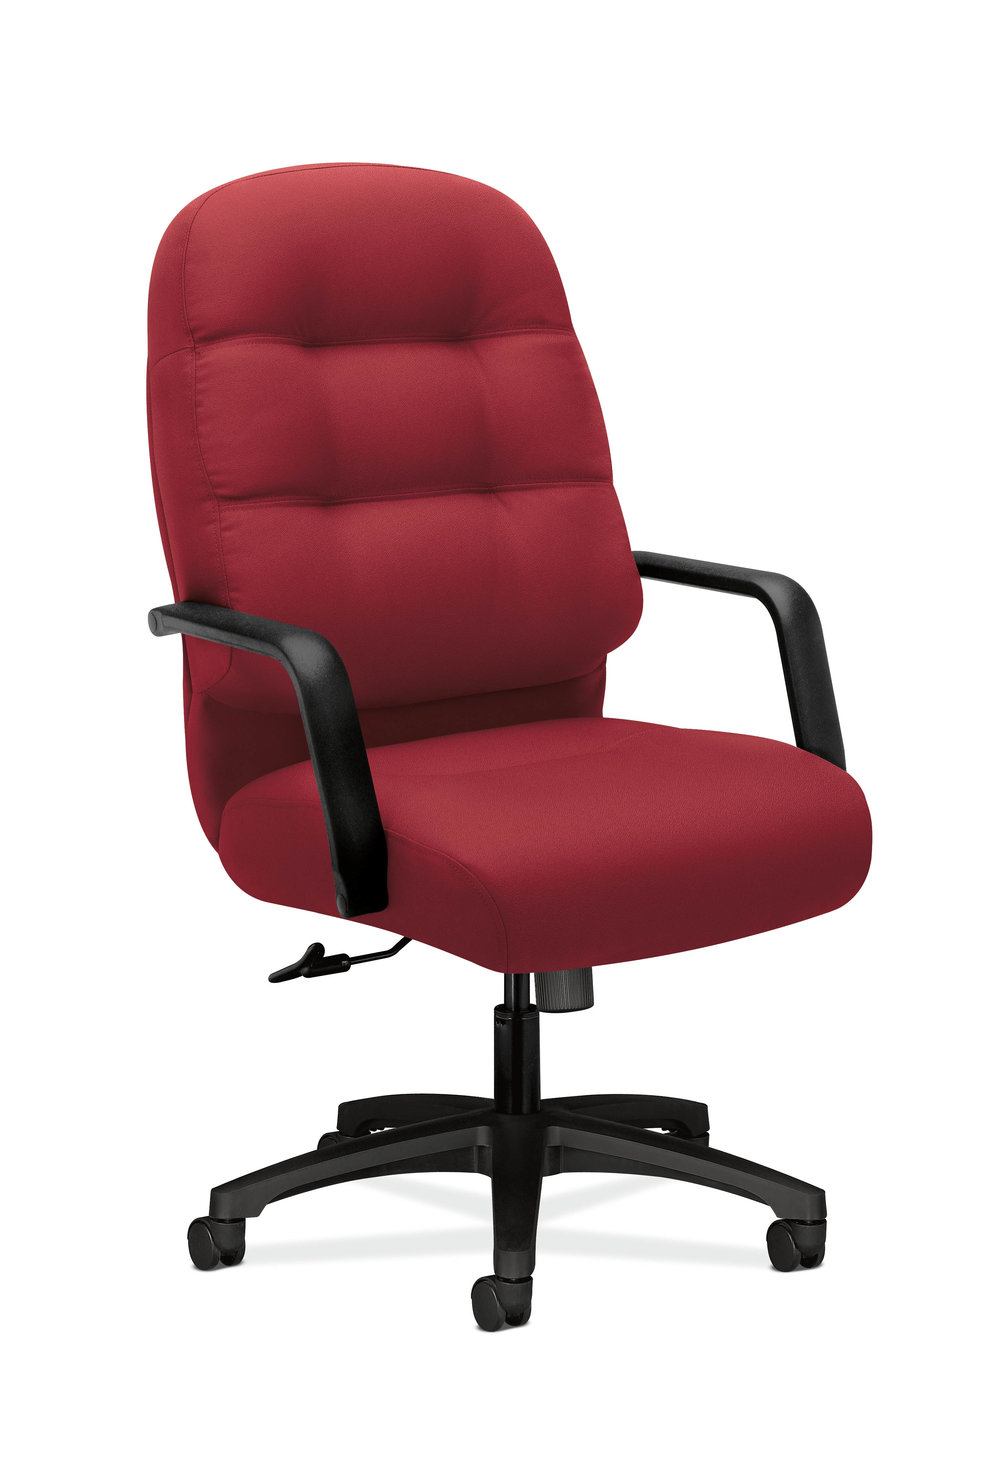 HON Pillow-Soft High-Back Chair